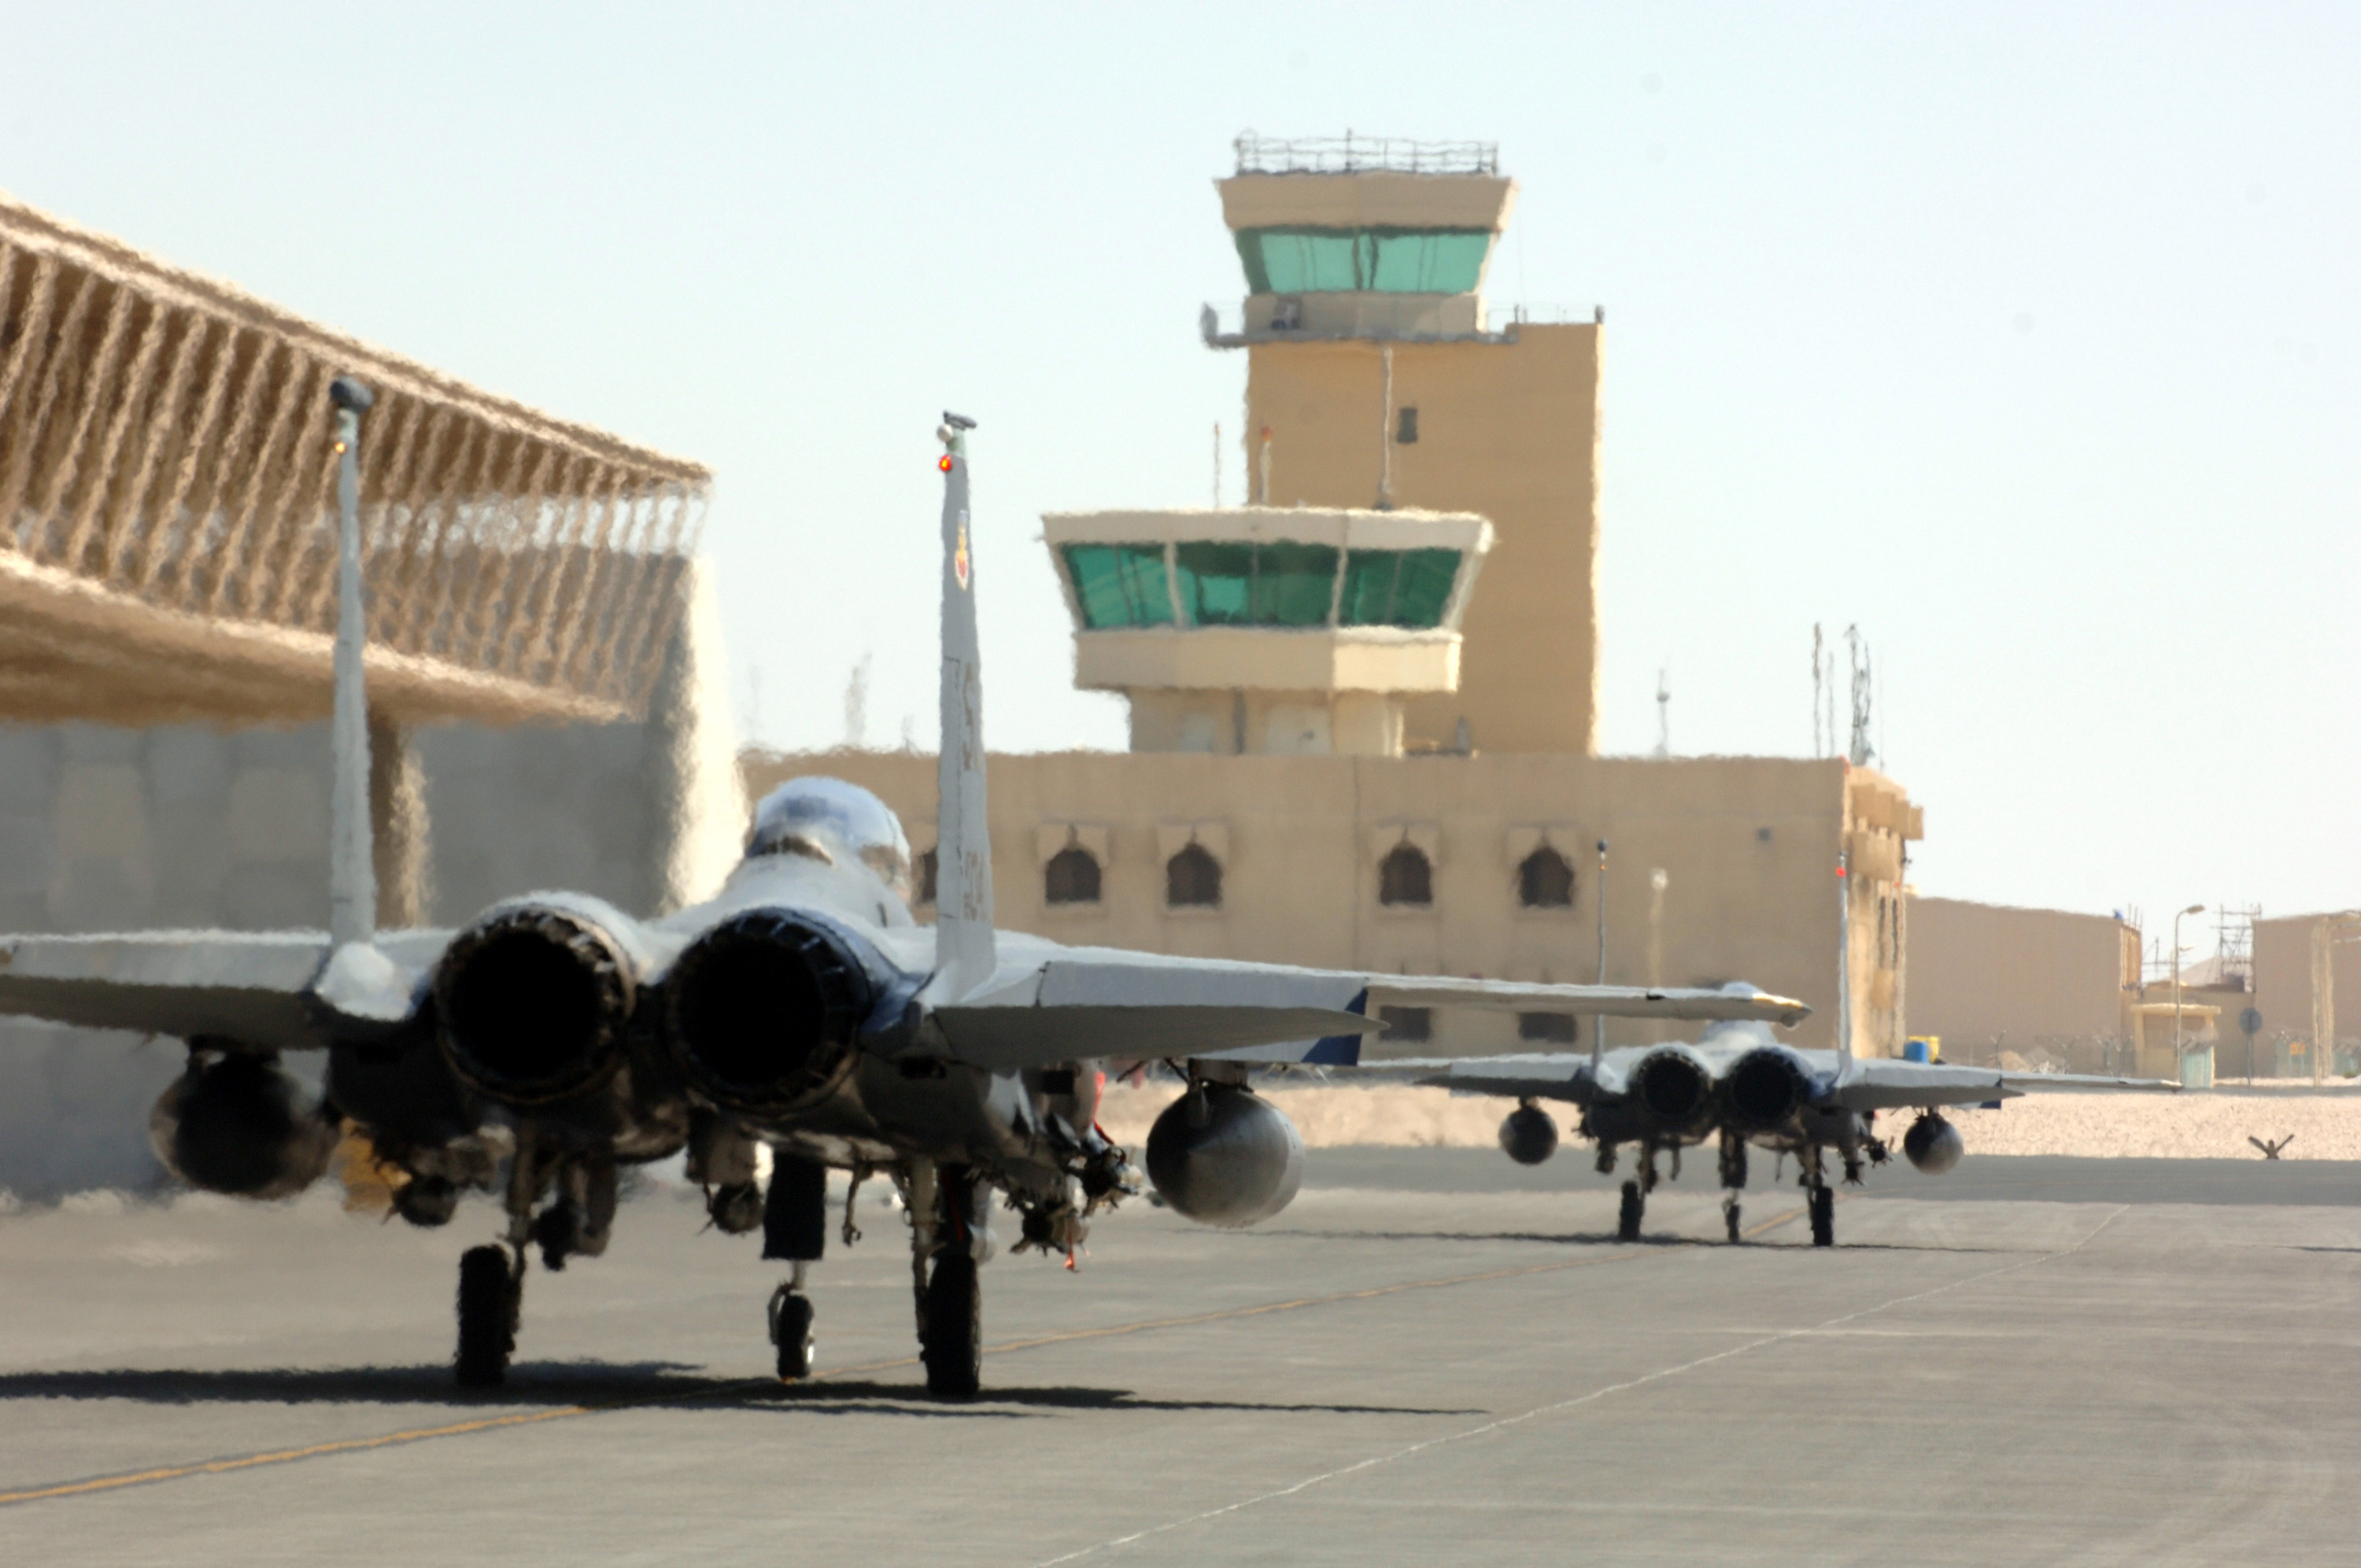 U S  extends runways at Qatar air base to accommodate B-2